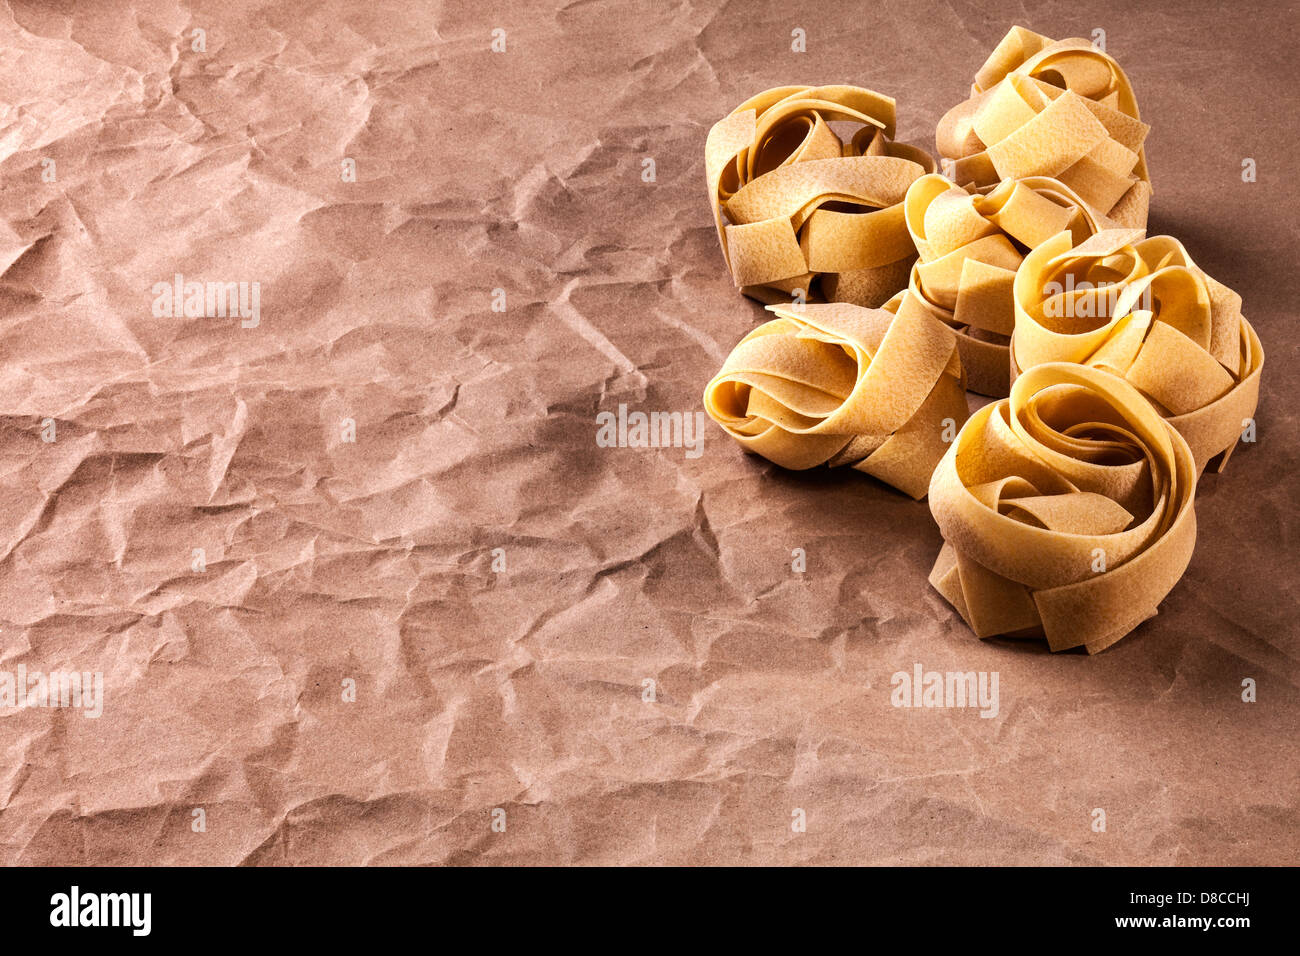 Fettucine Pasta on Brown Paper Background - fettucine or tagliatelle or pappardelle pasta on a background of crumpled... - Stock Image